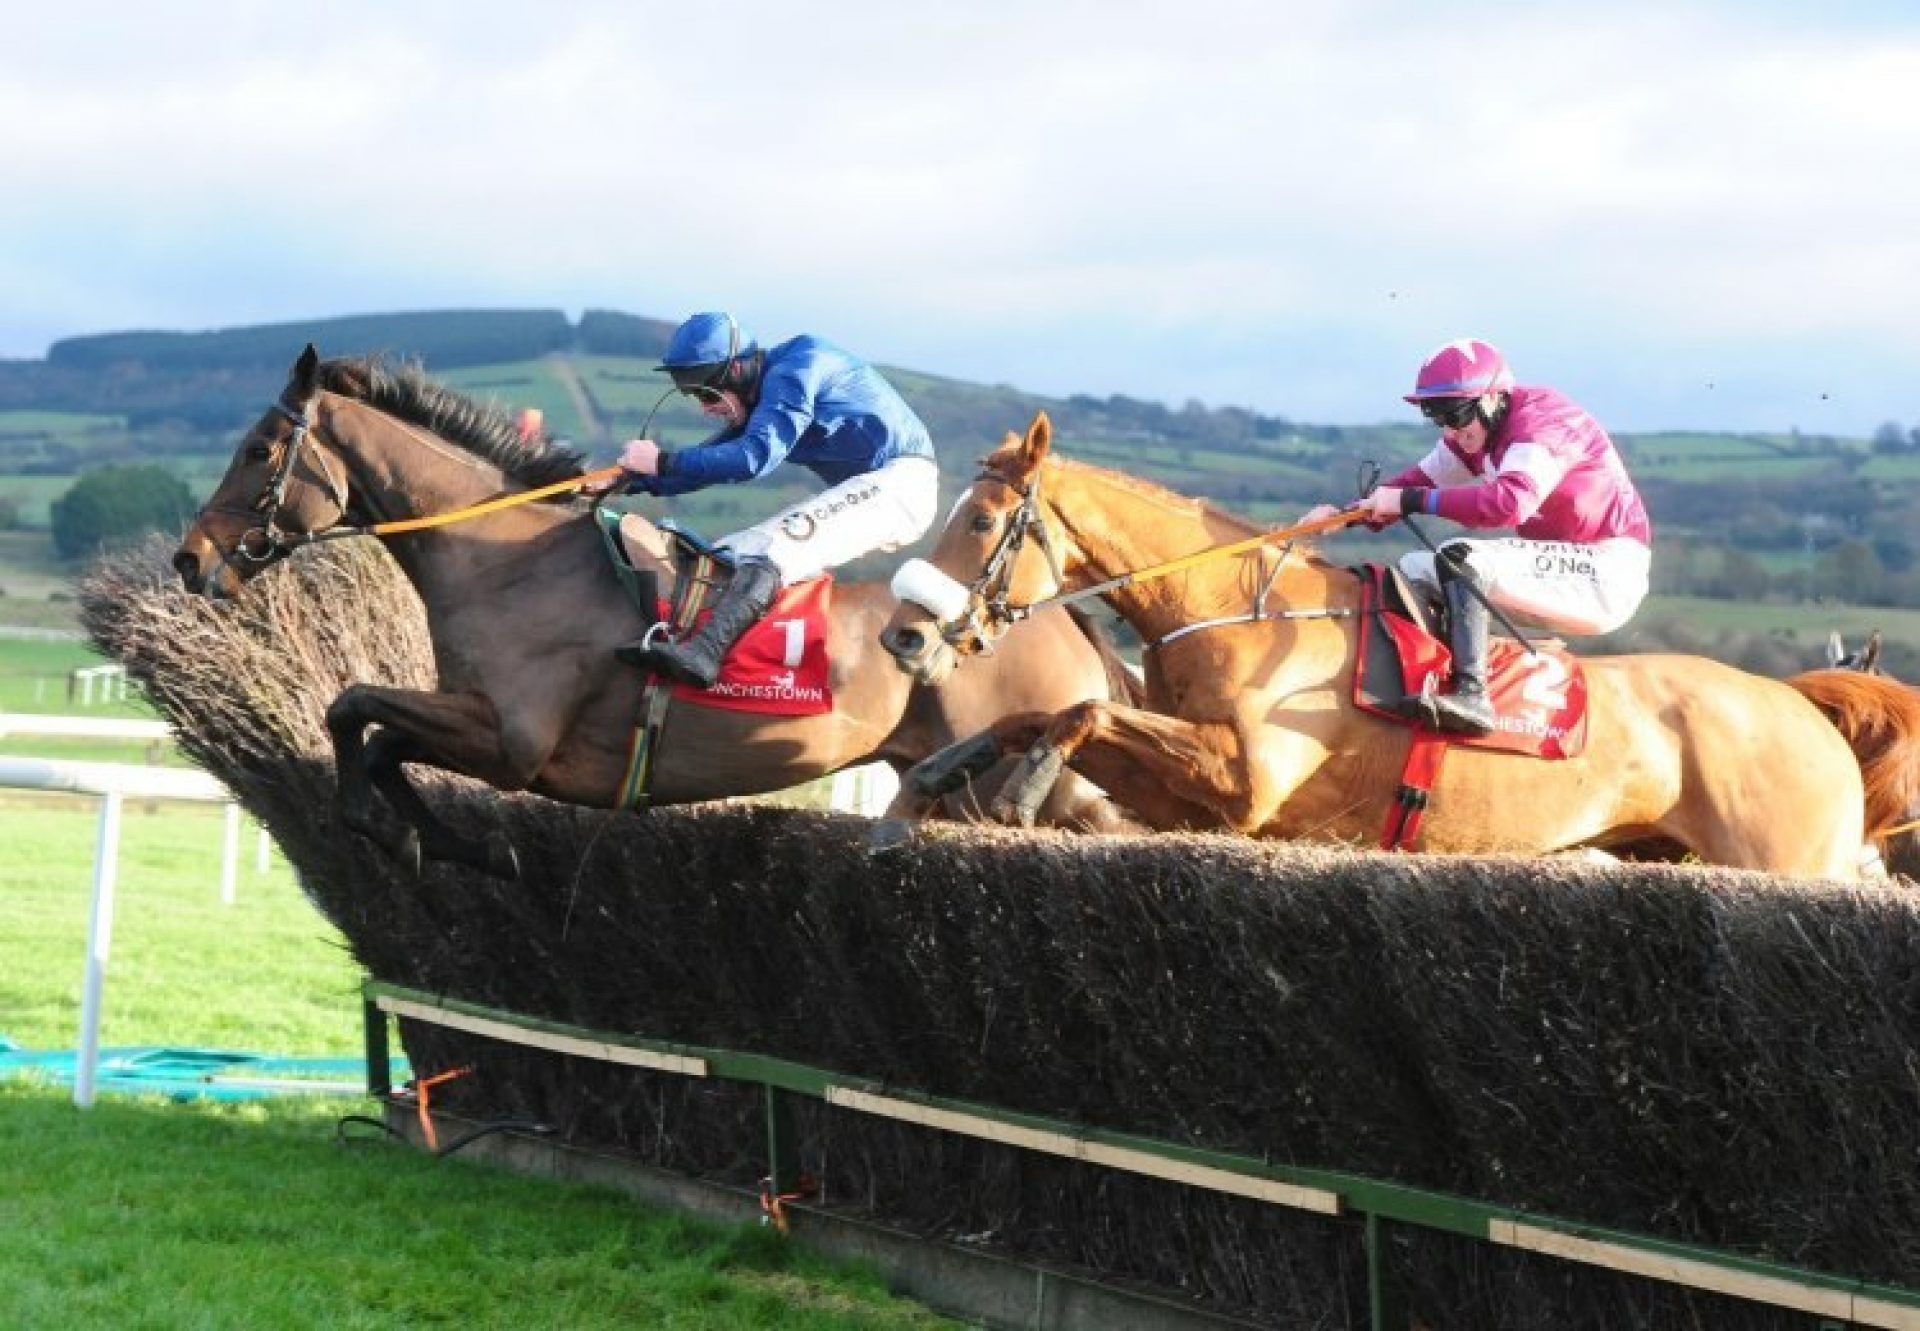 The Wests Awake (Yeats) winning a novice chase at Punchestown